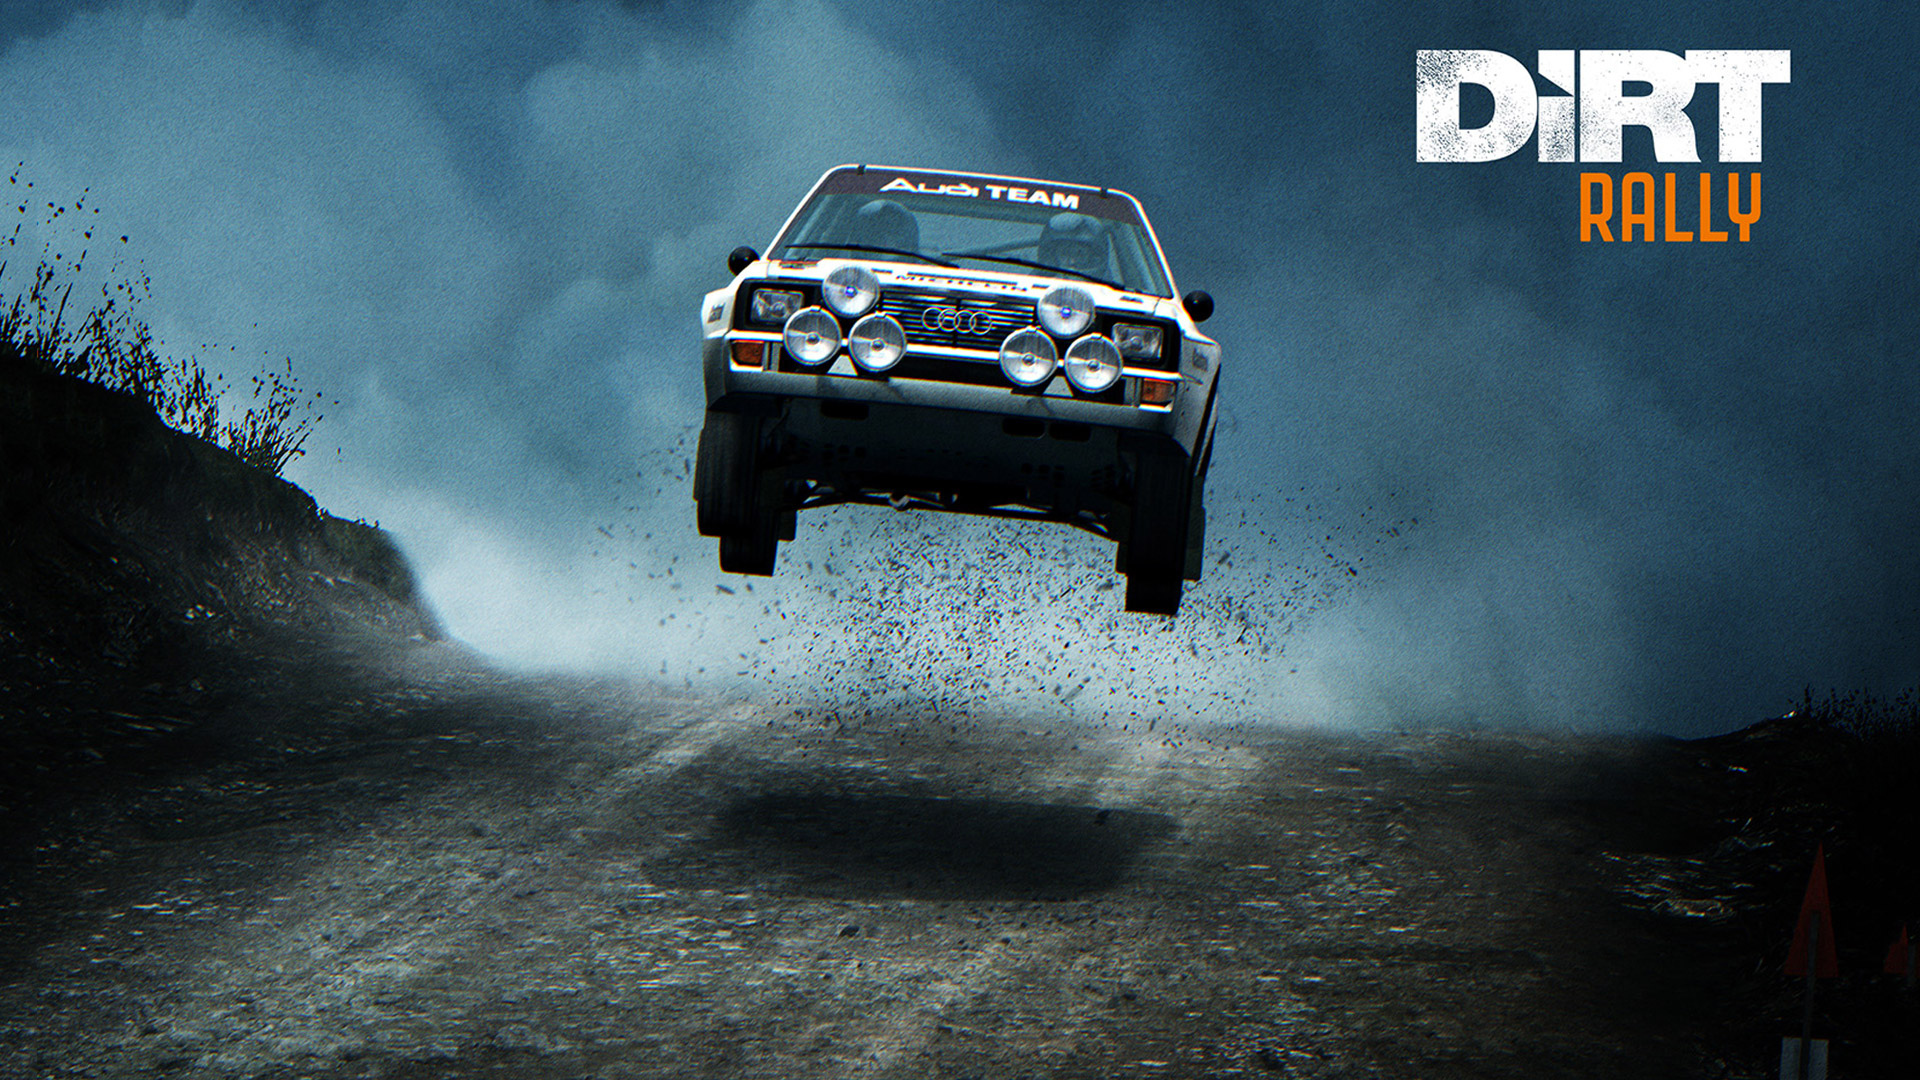 DiRT Rally Wallpaper in 1920x1080